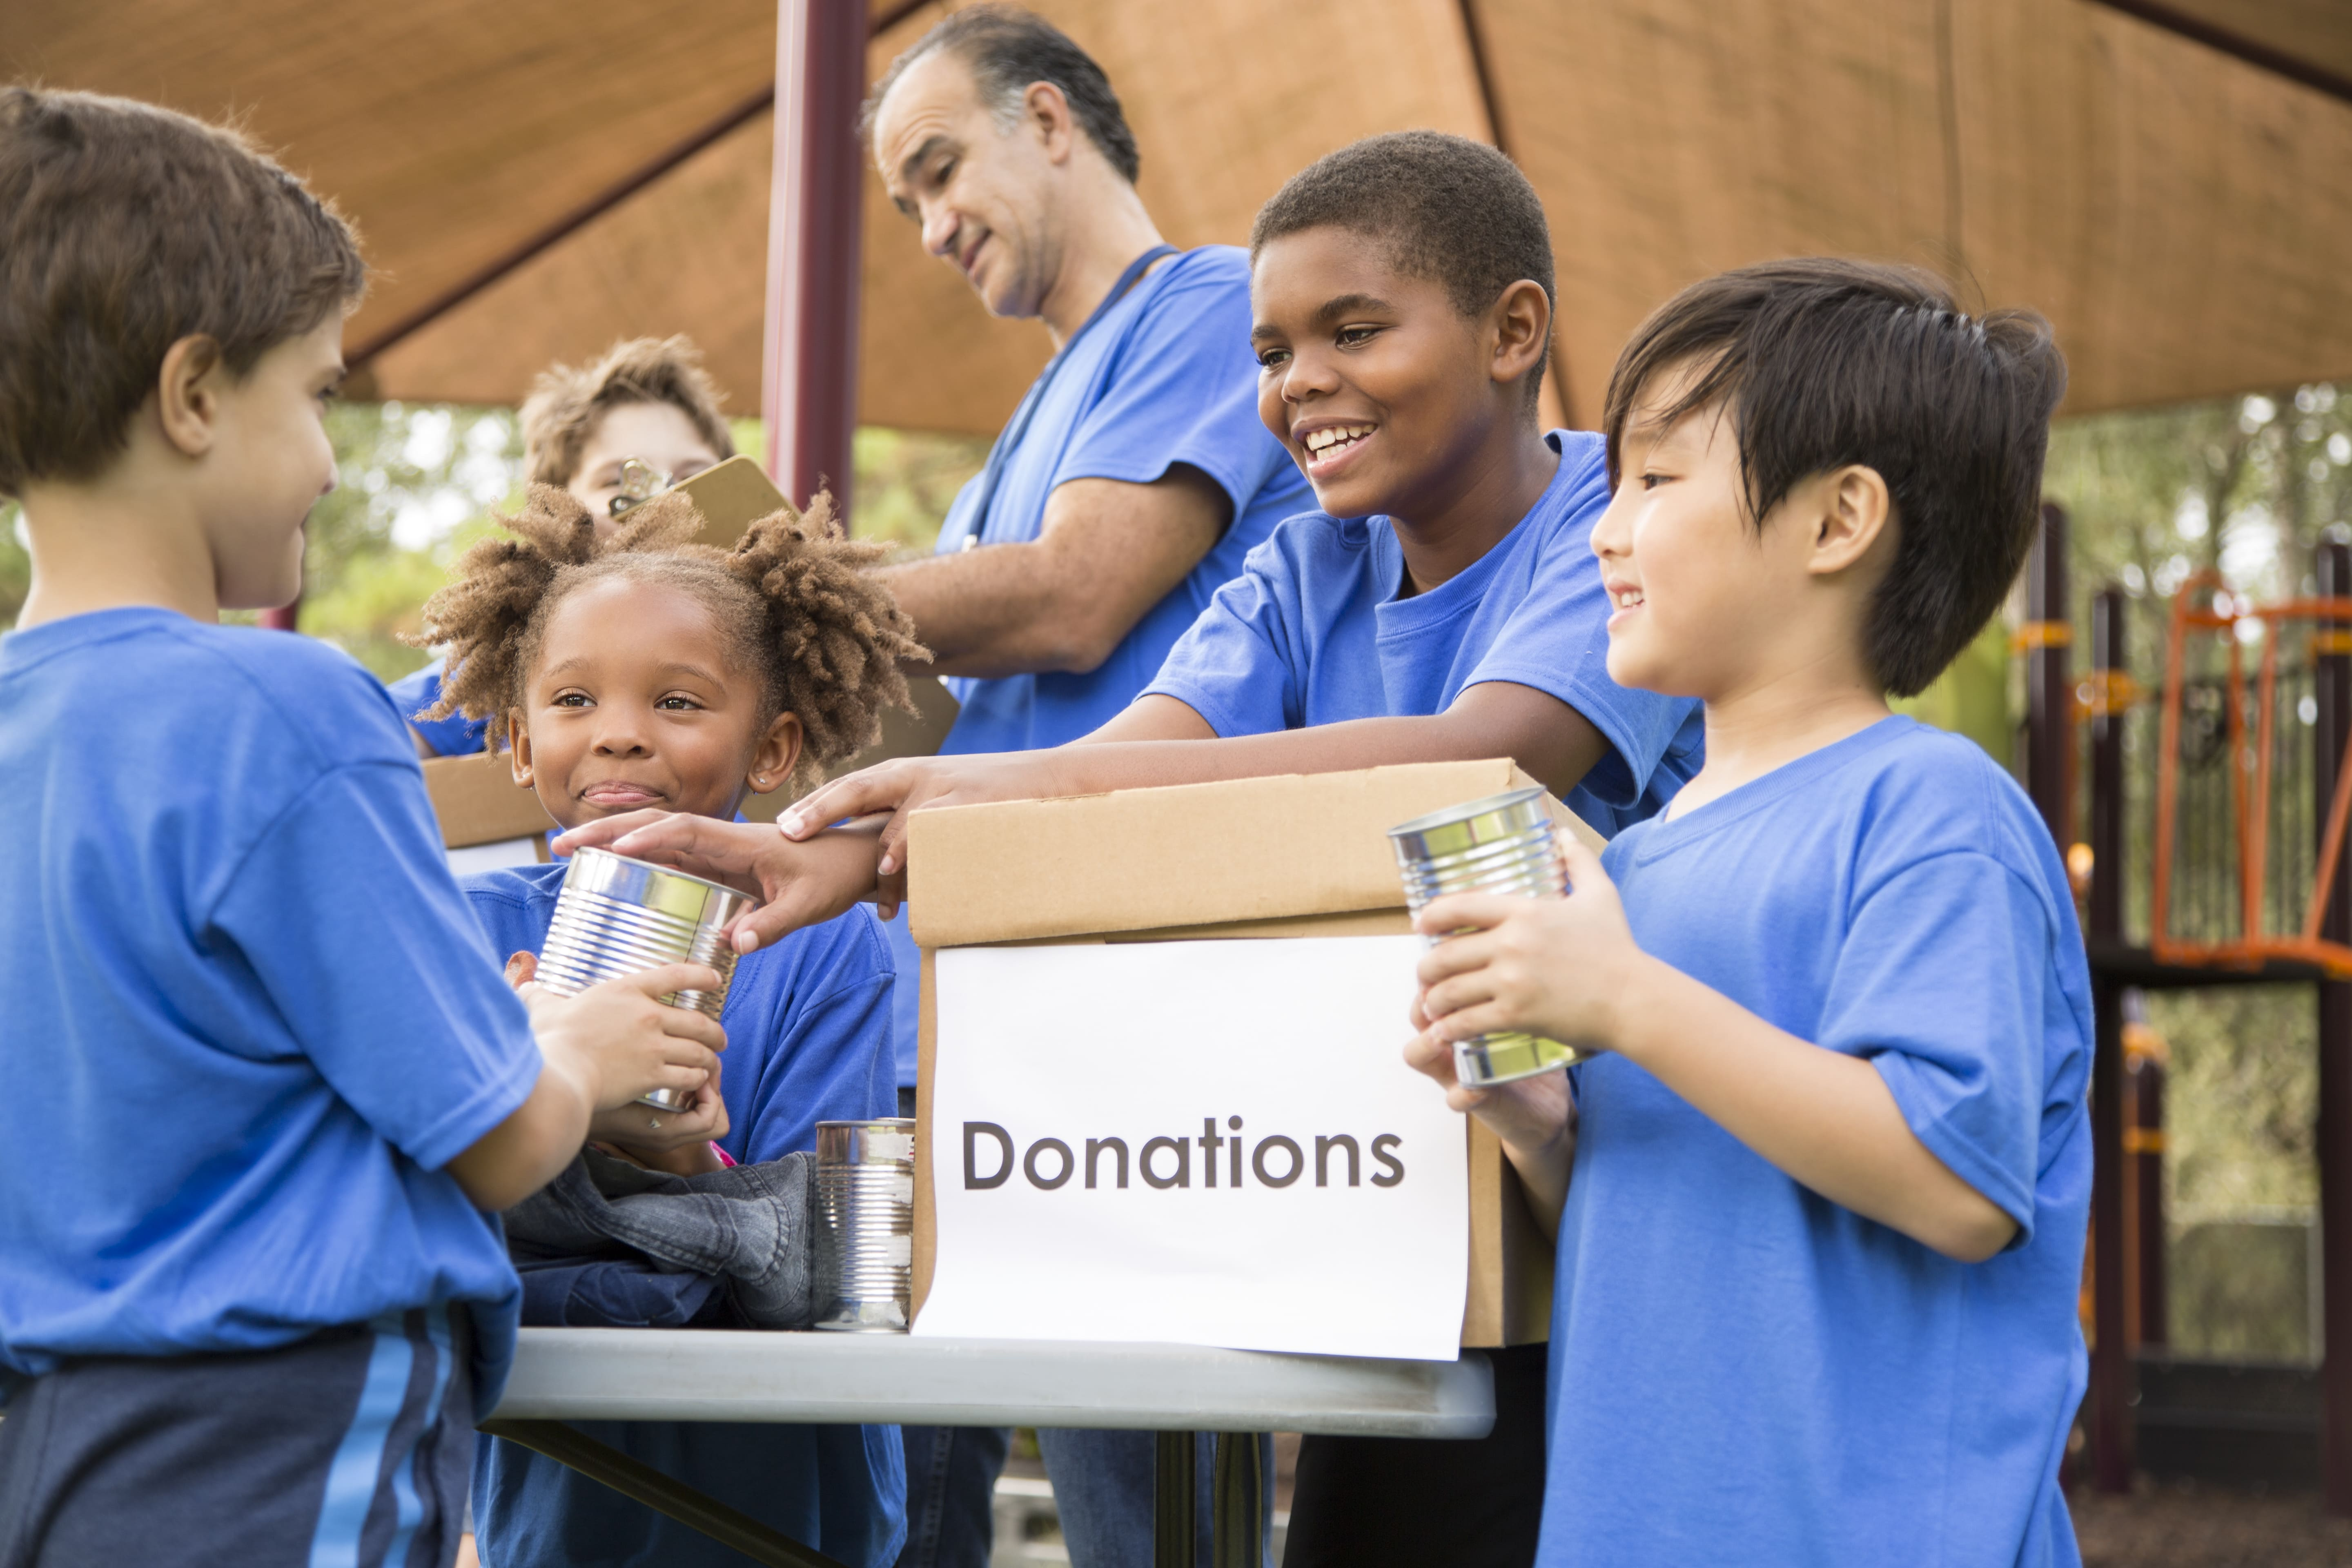 Top 10 Children's Charities